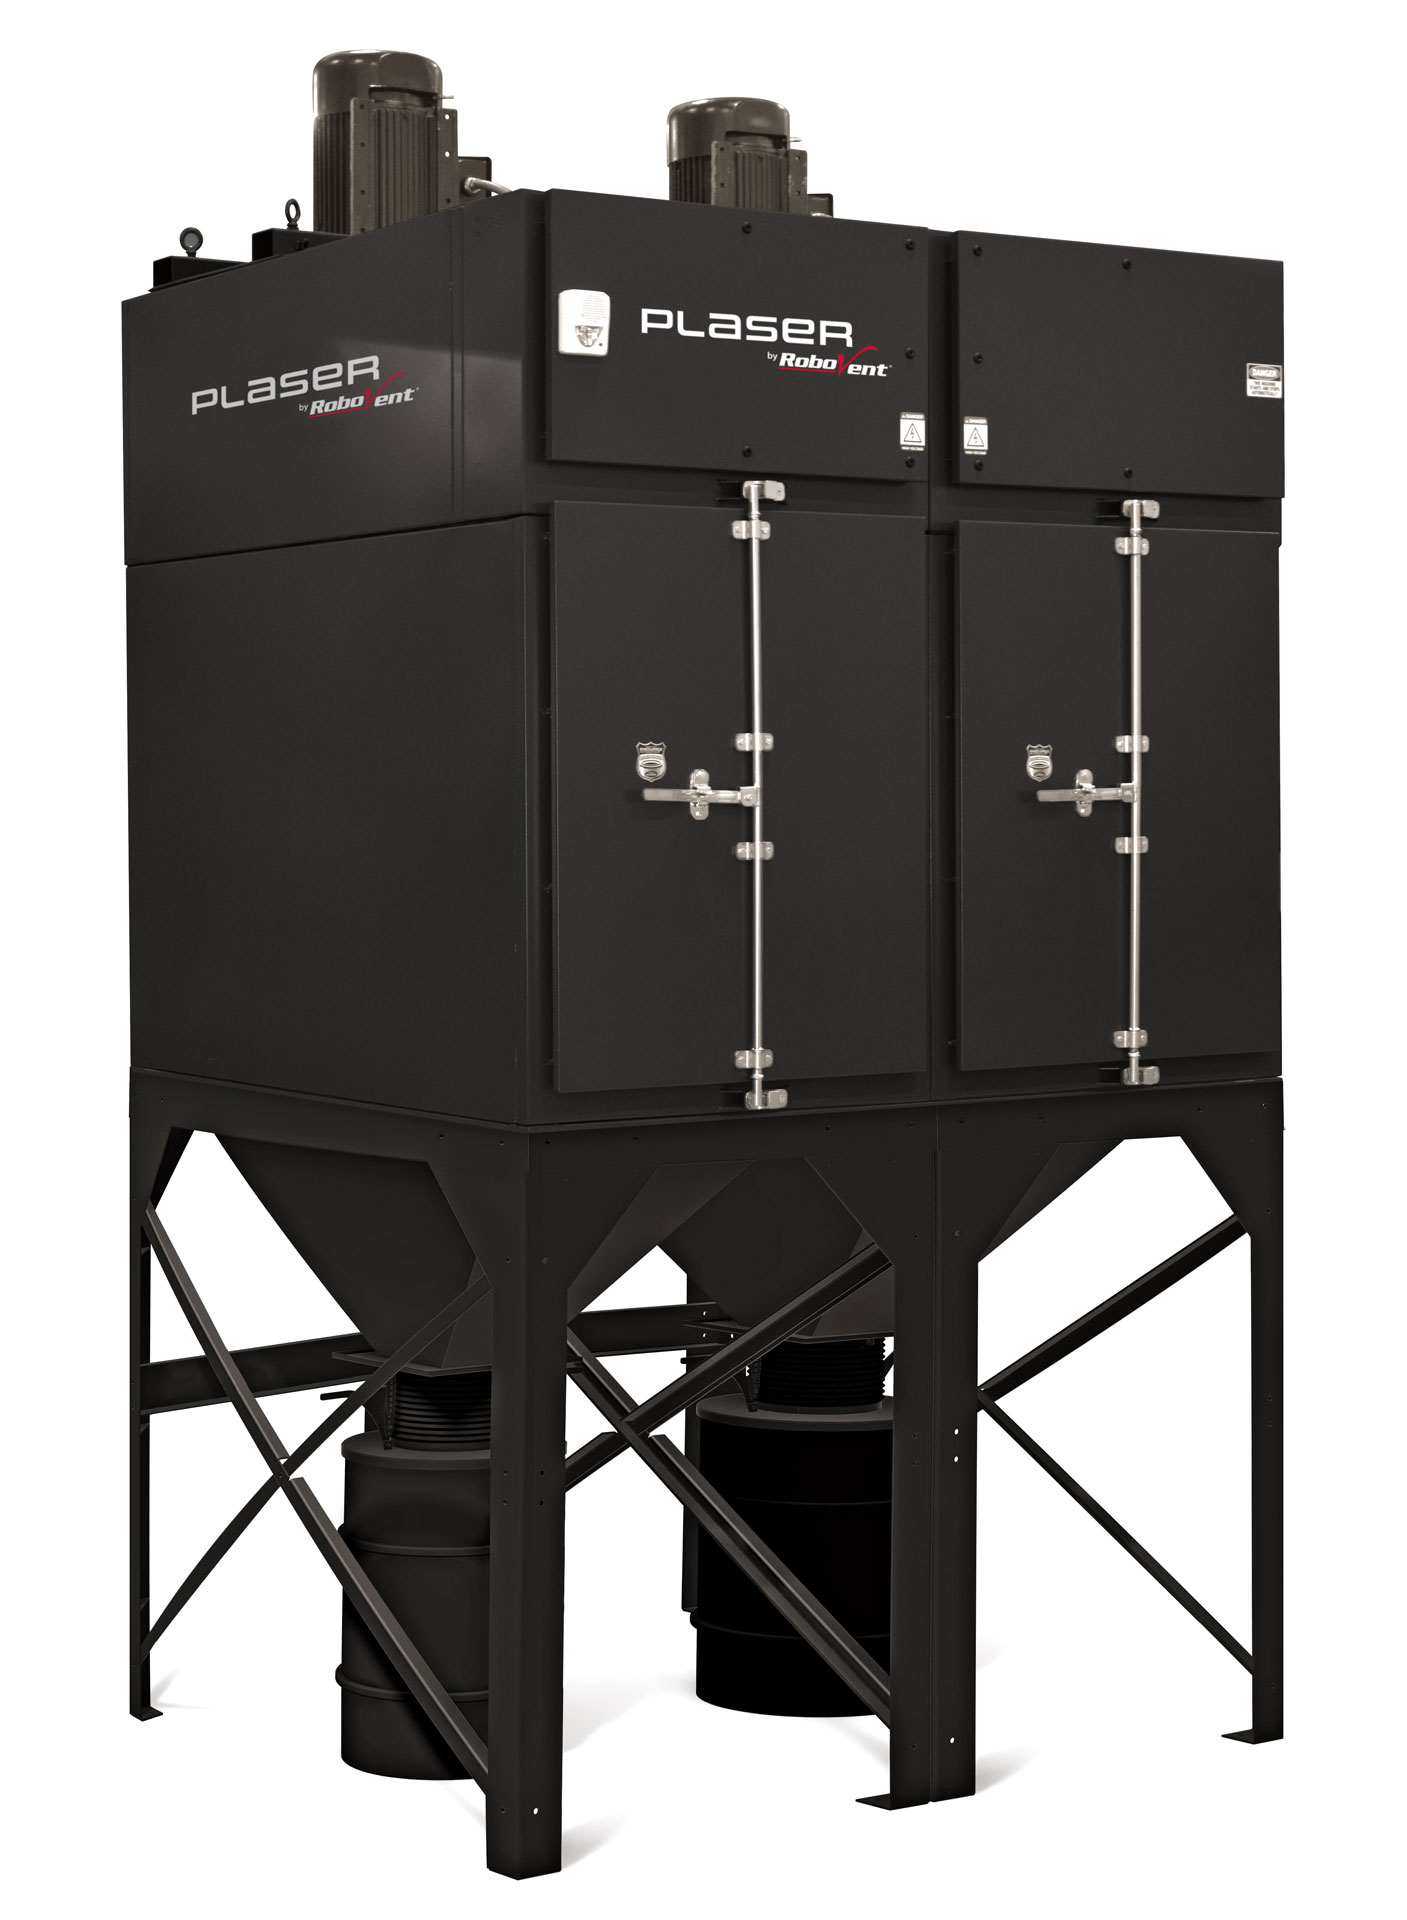 RoboVent Plaser Series: Fume Extraction for Plasma Cutting